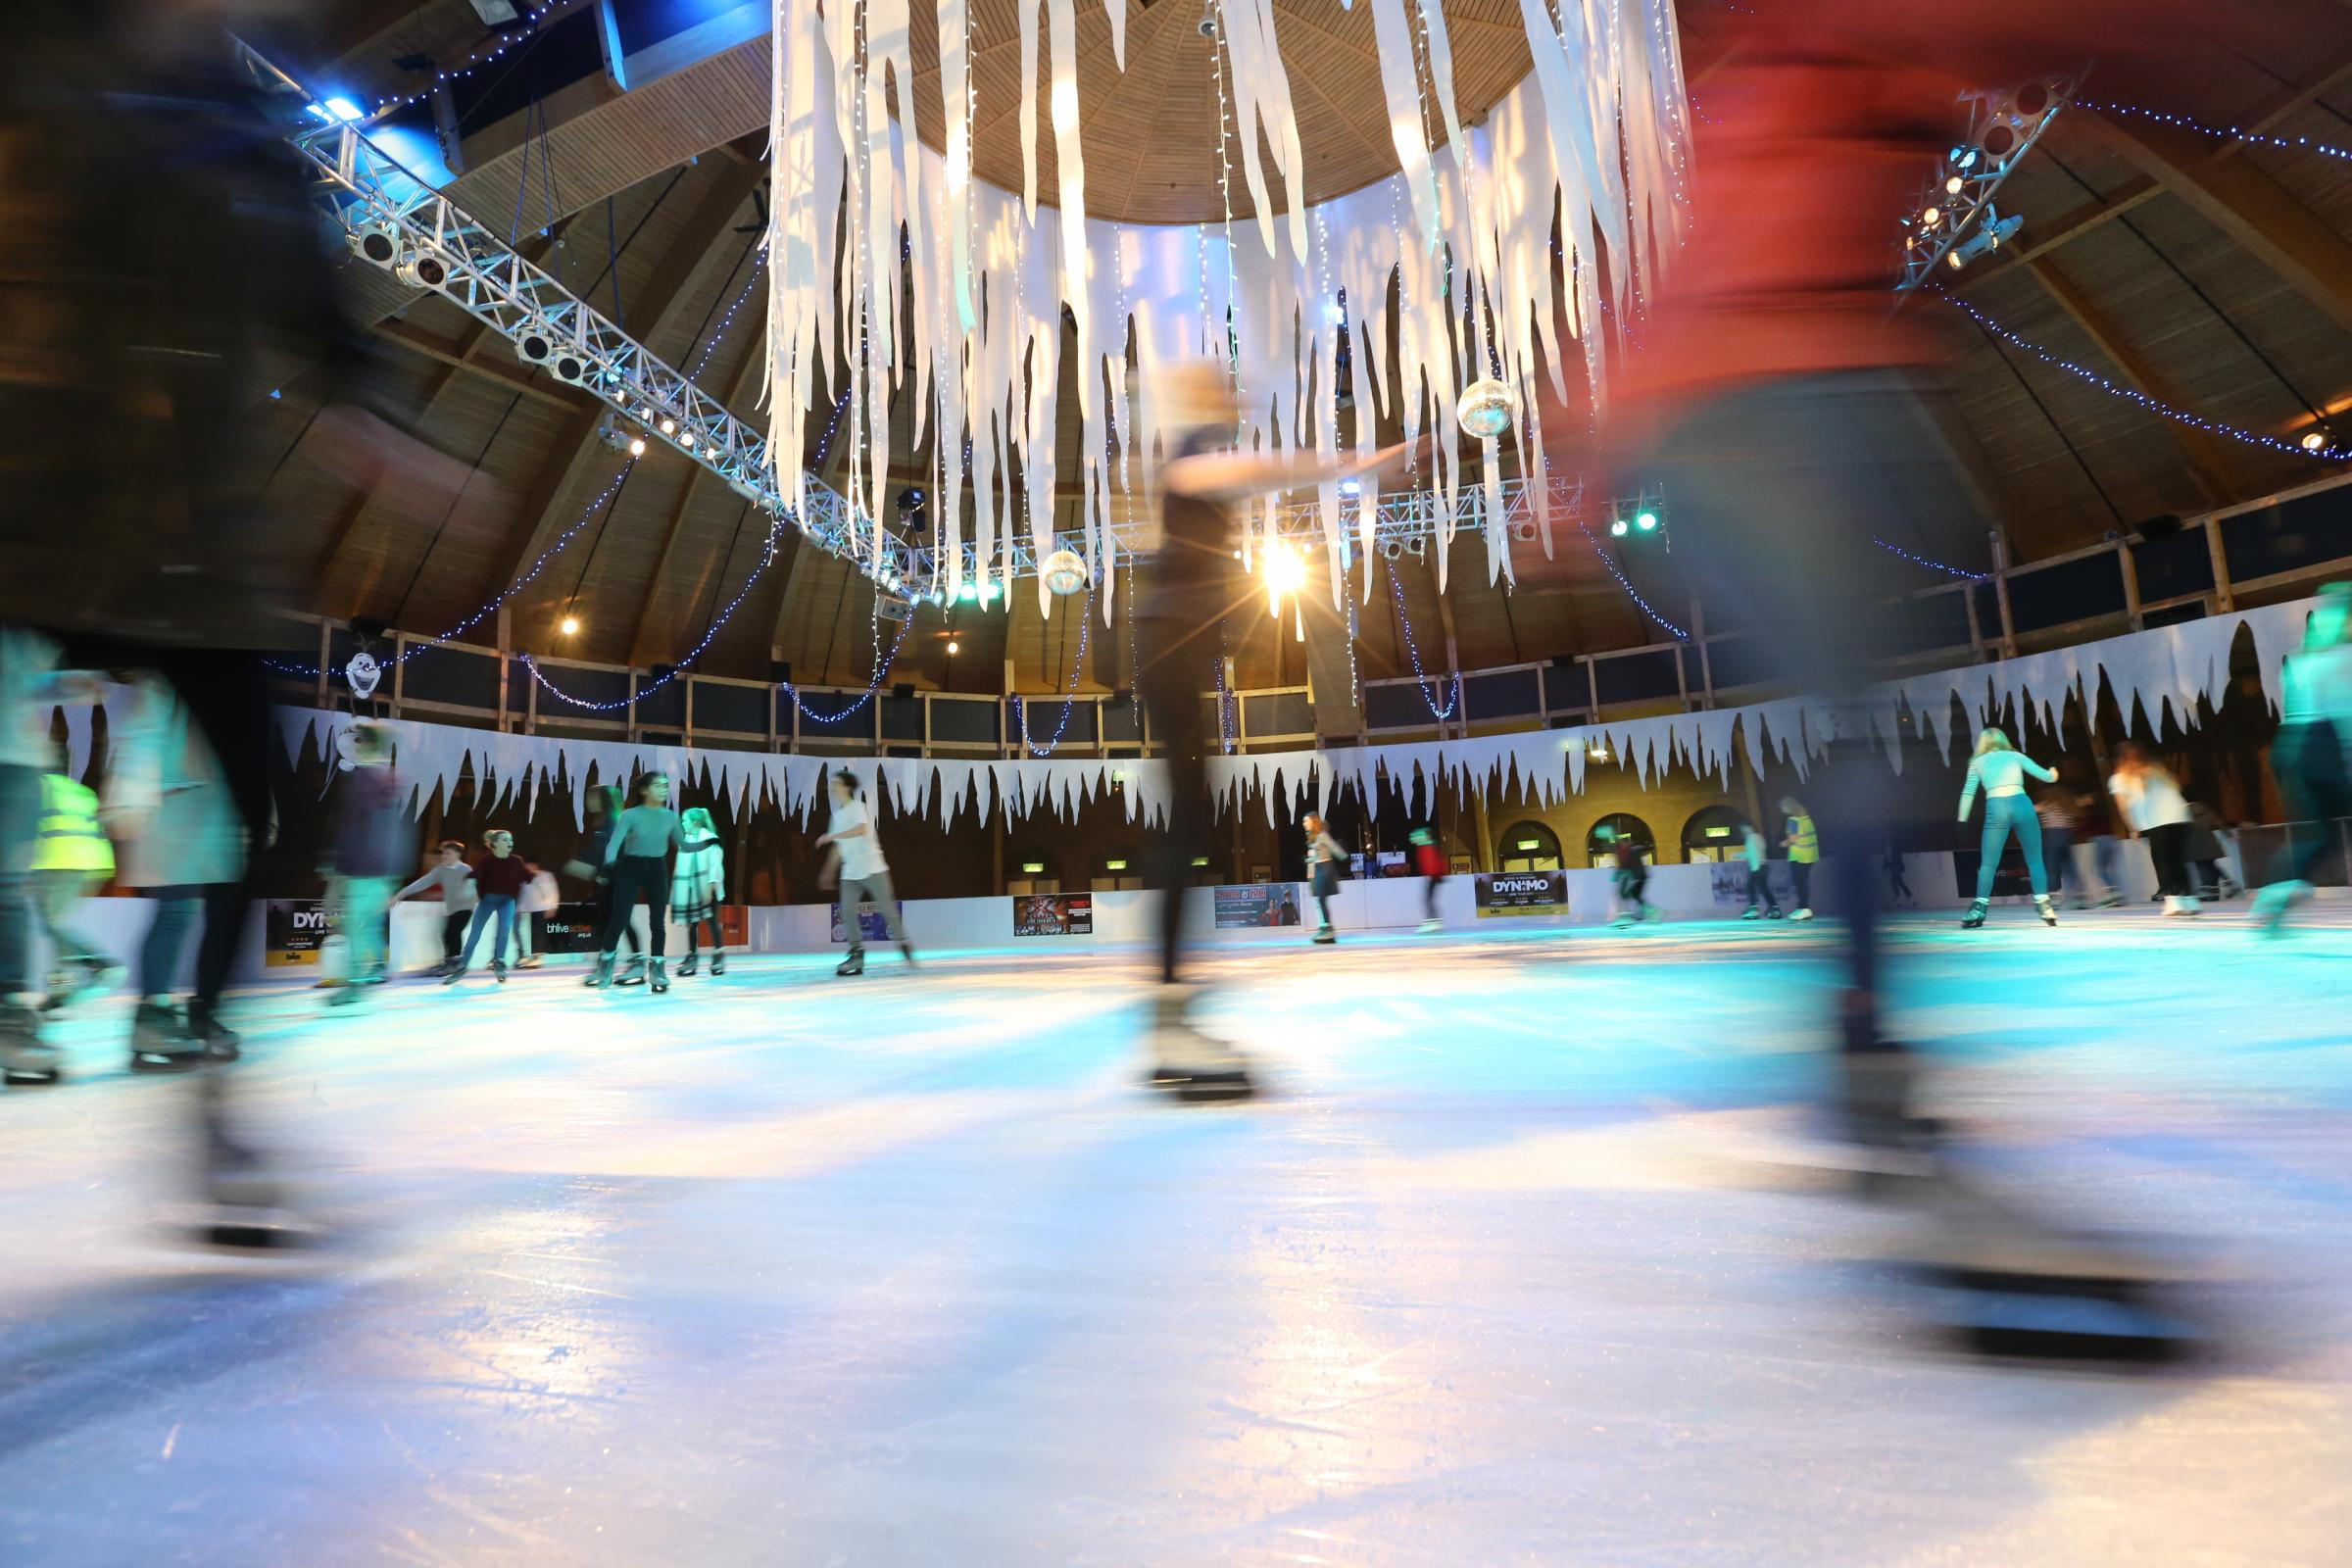 Get your skates on! south coast's biggest indoor ice rink ...